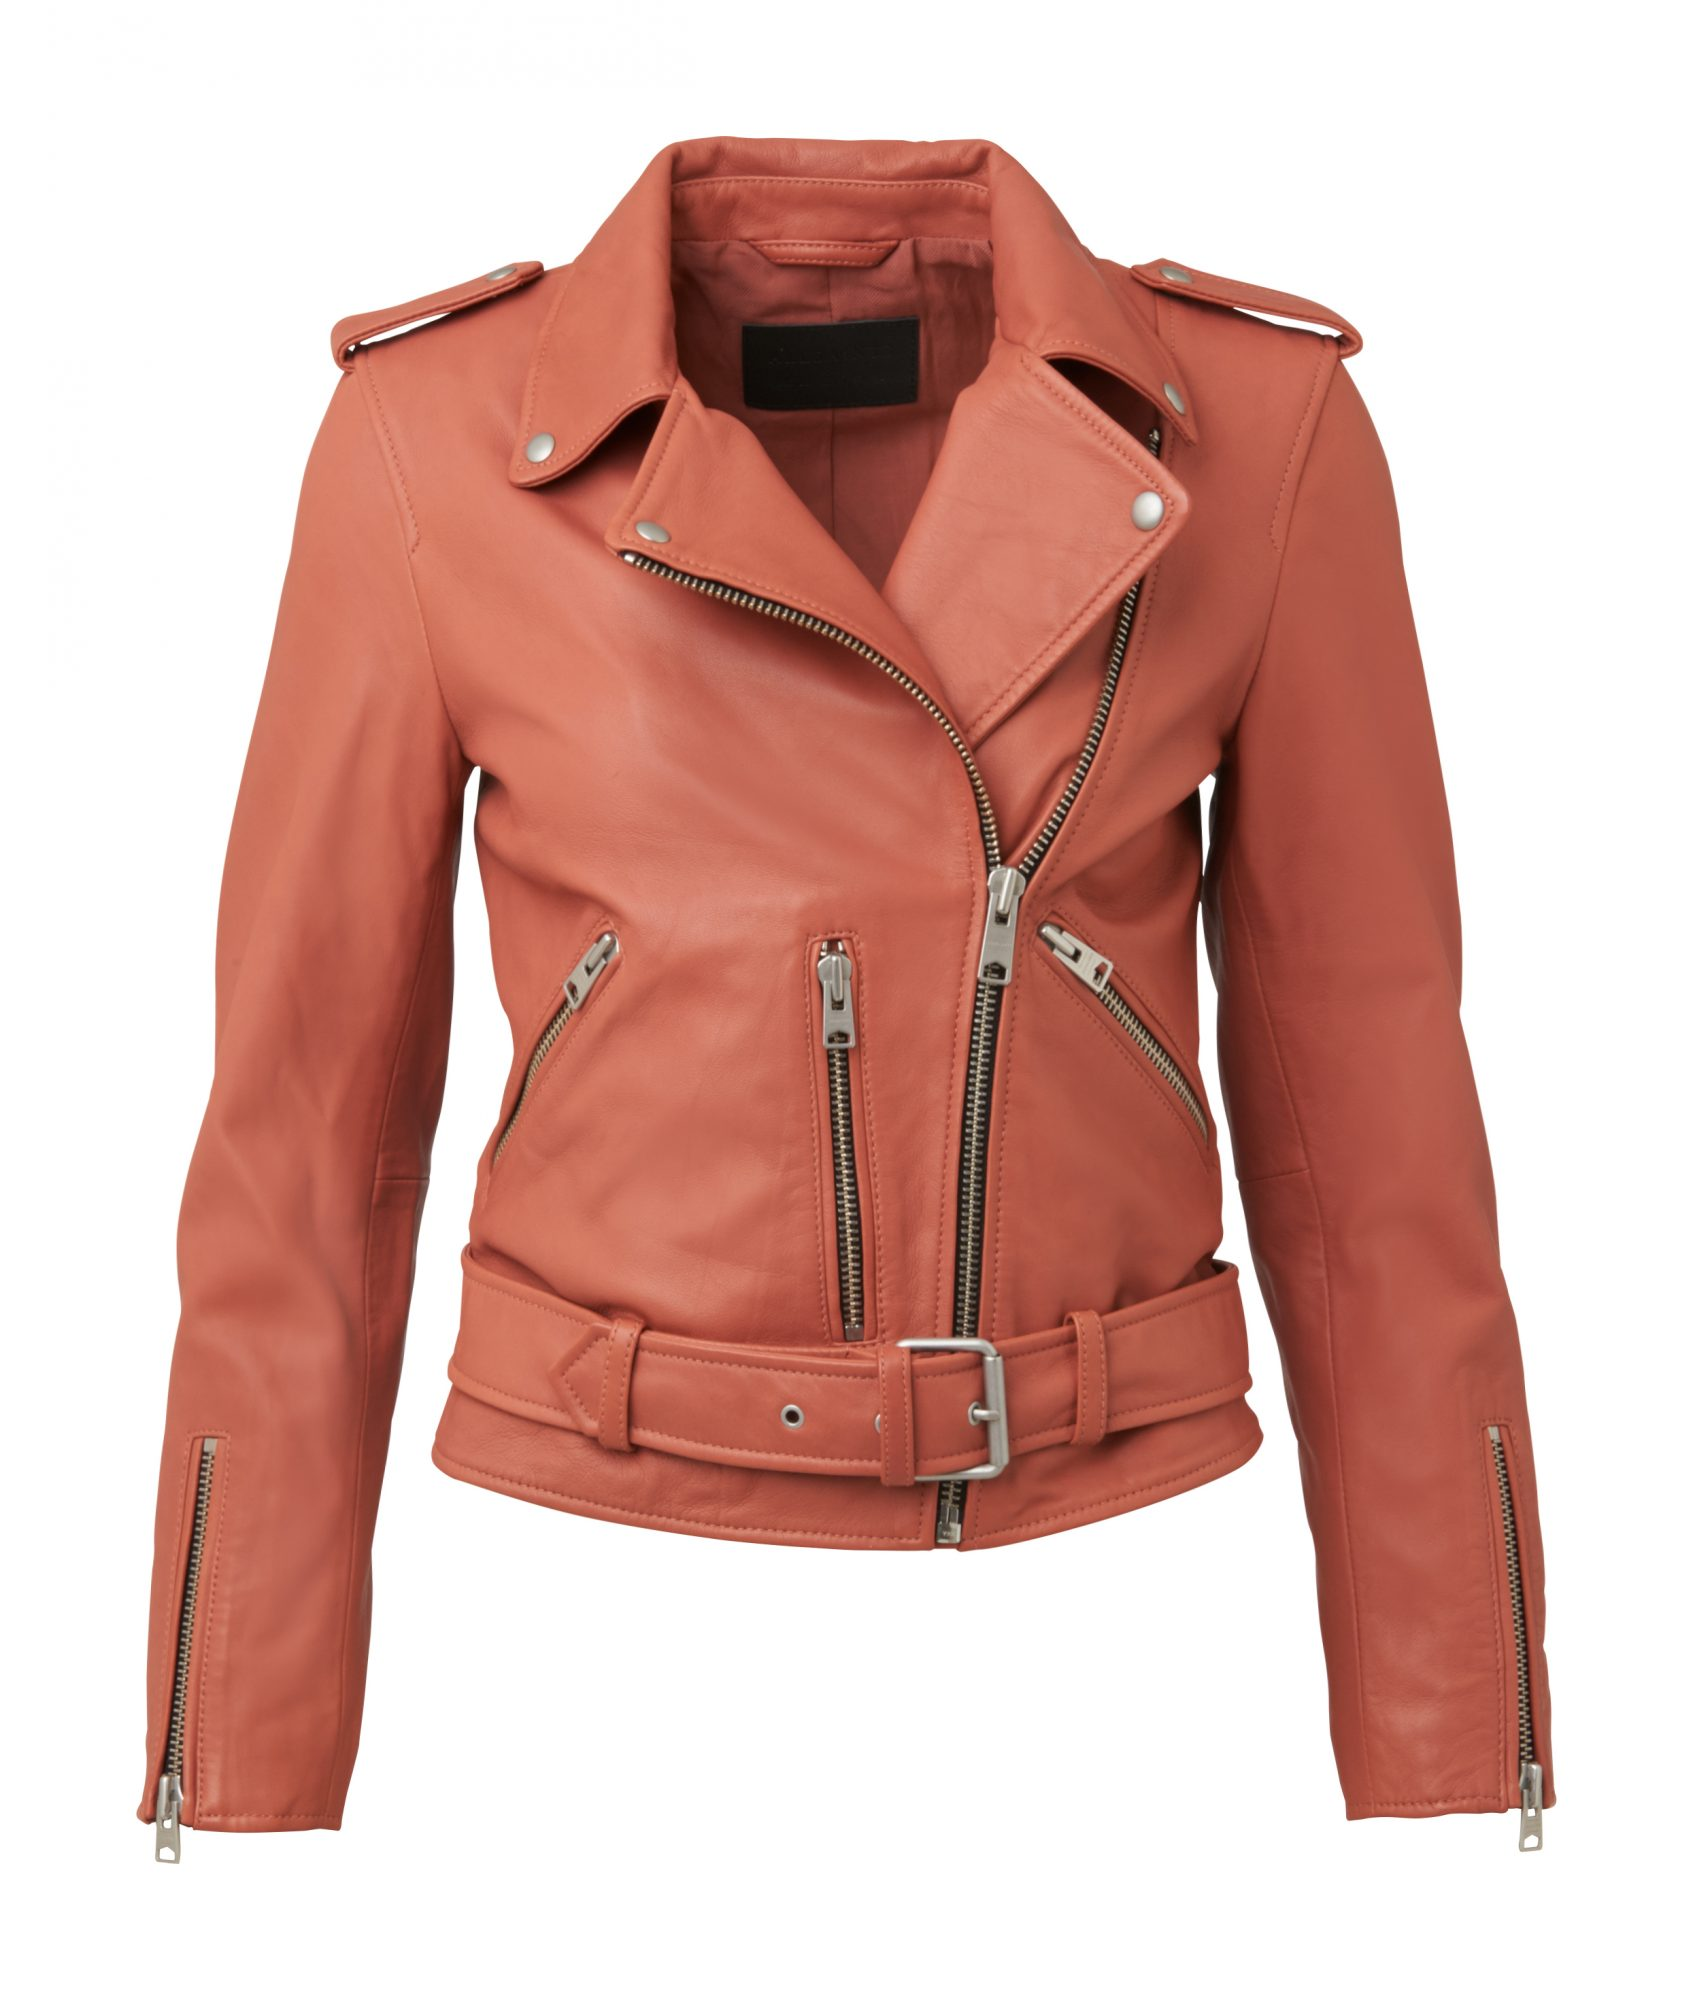 Colorful Leather Bomber